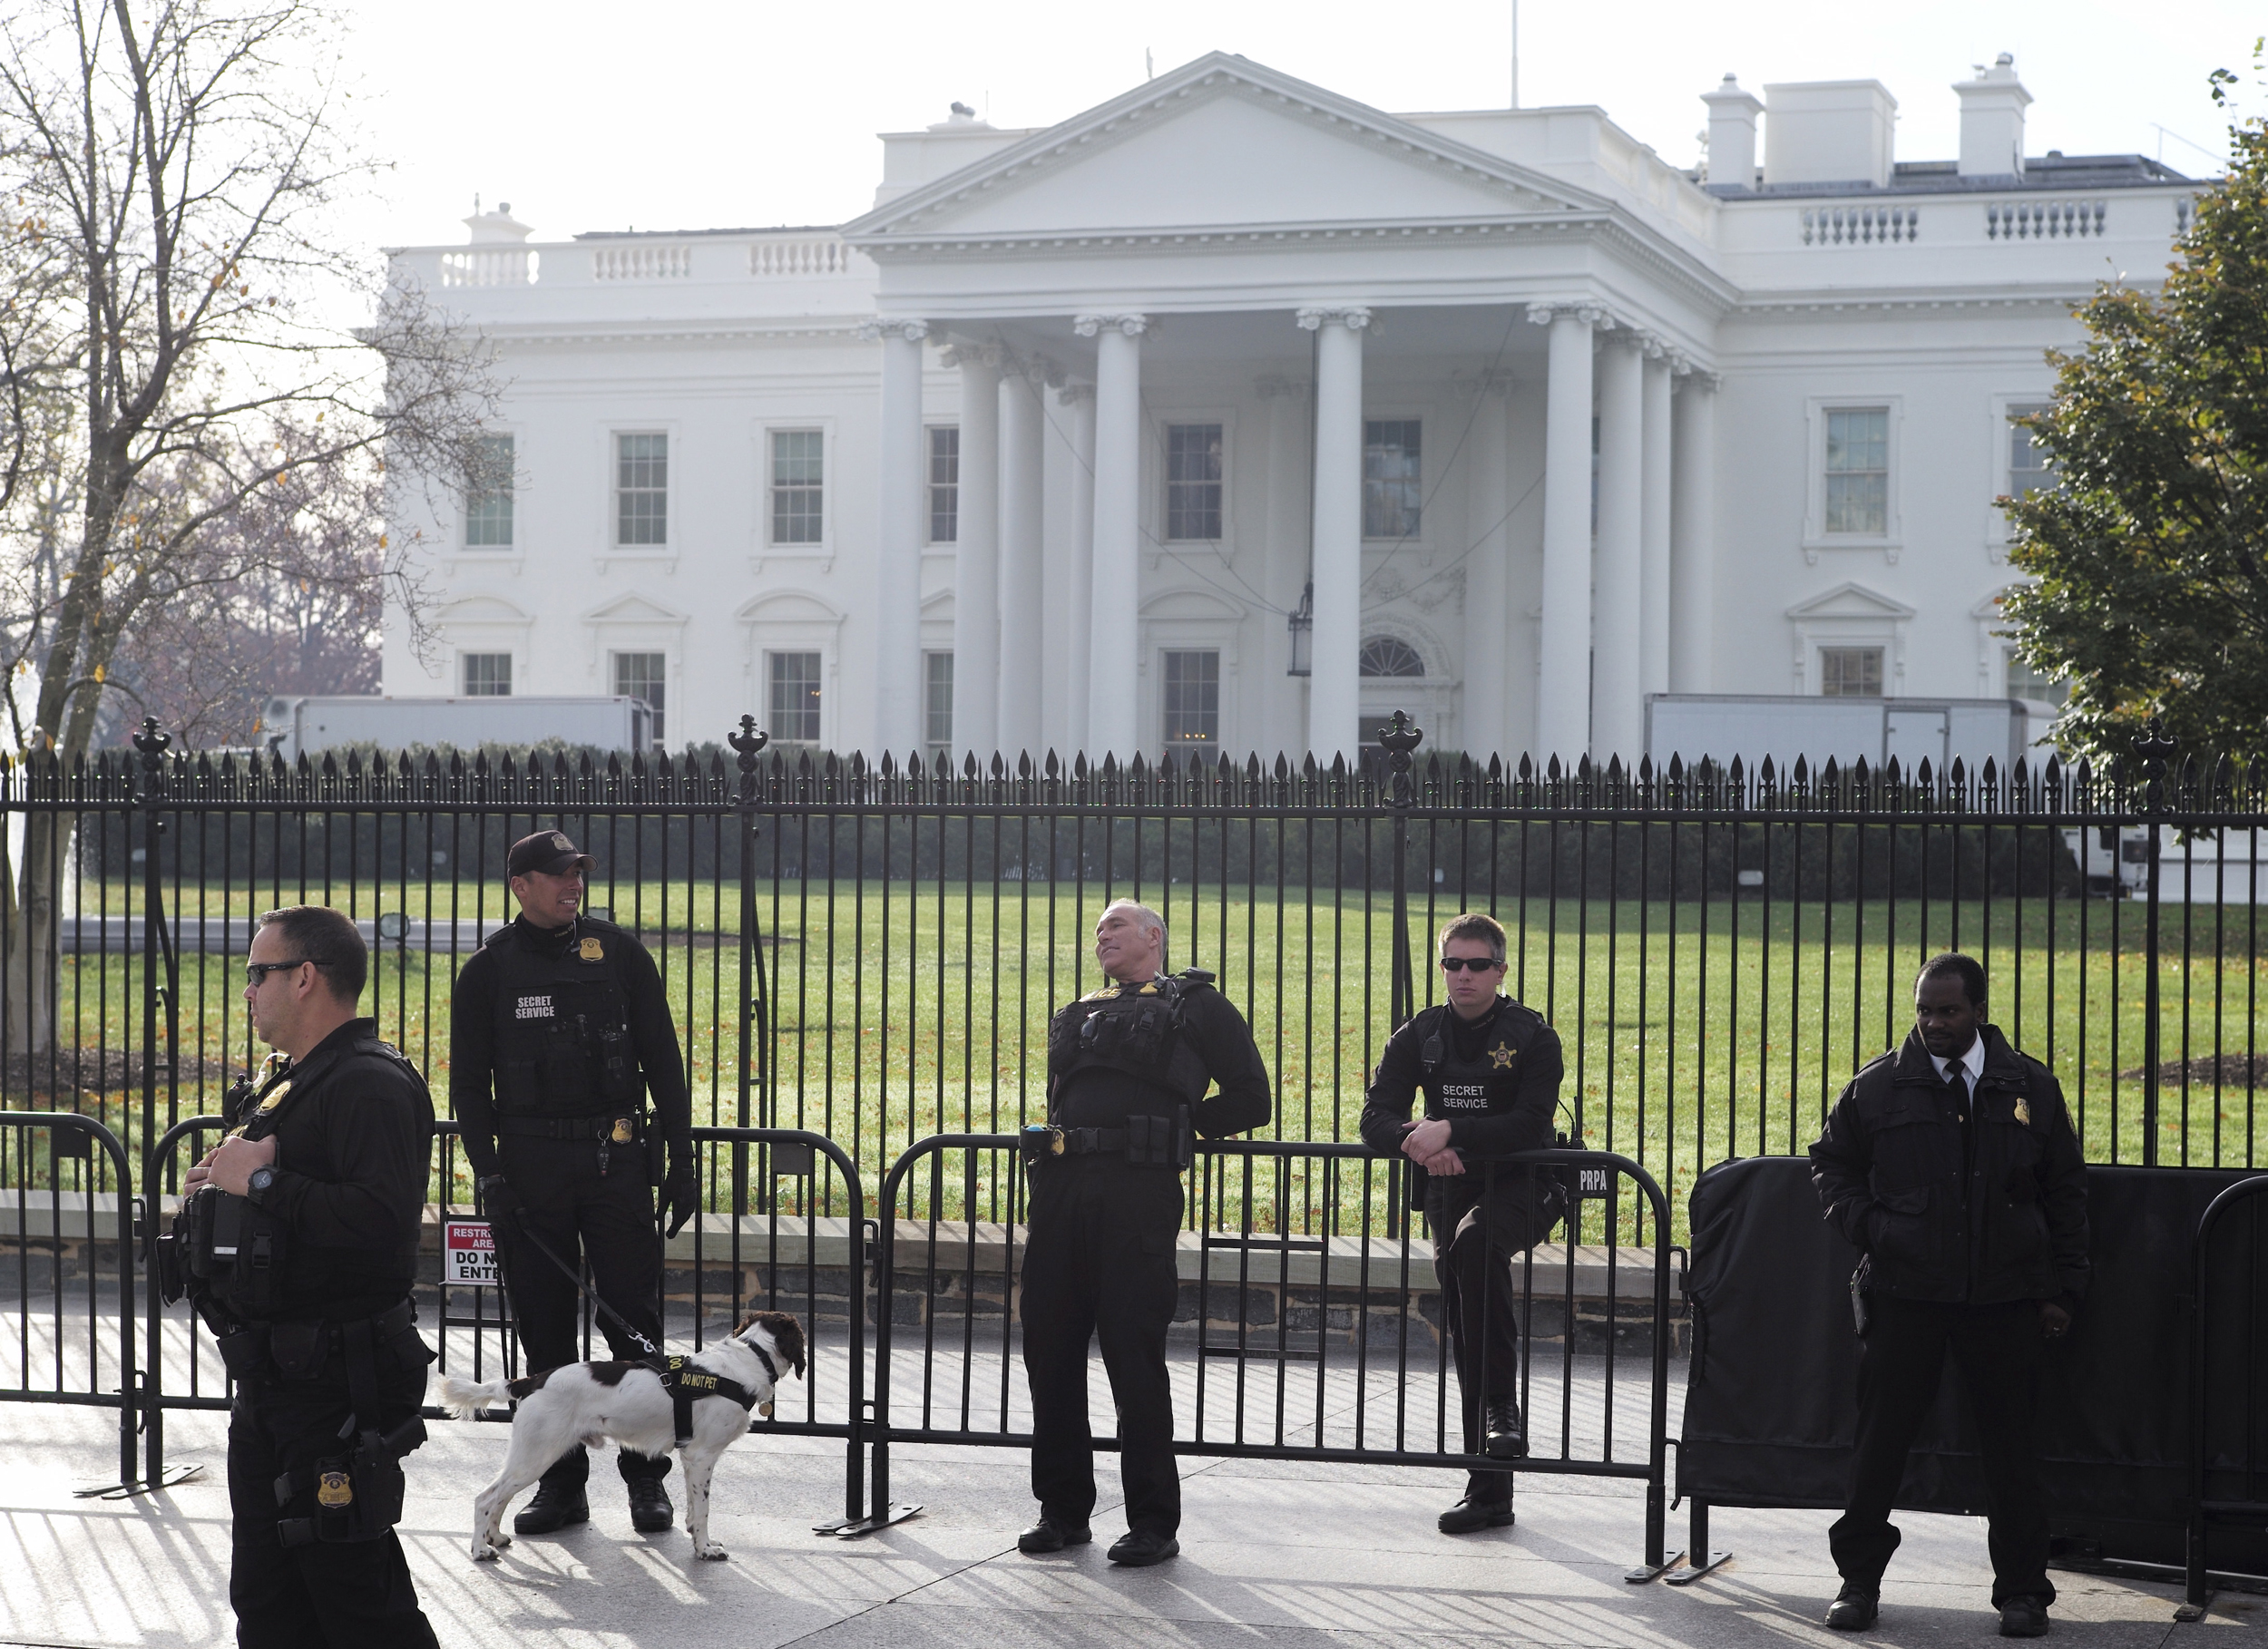 Shoelaces Foil White House Fence Jumper Found Dangling